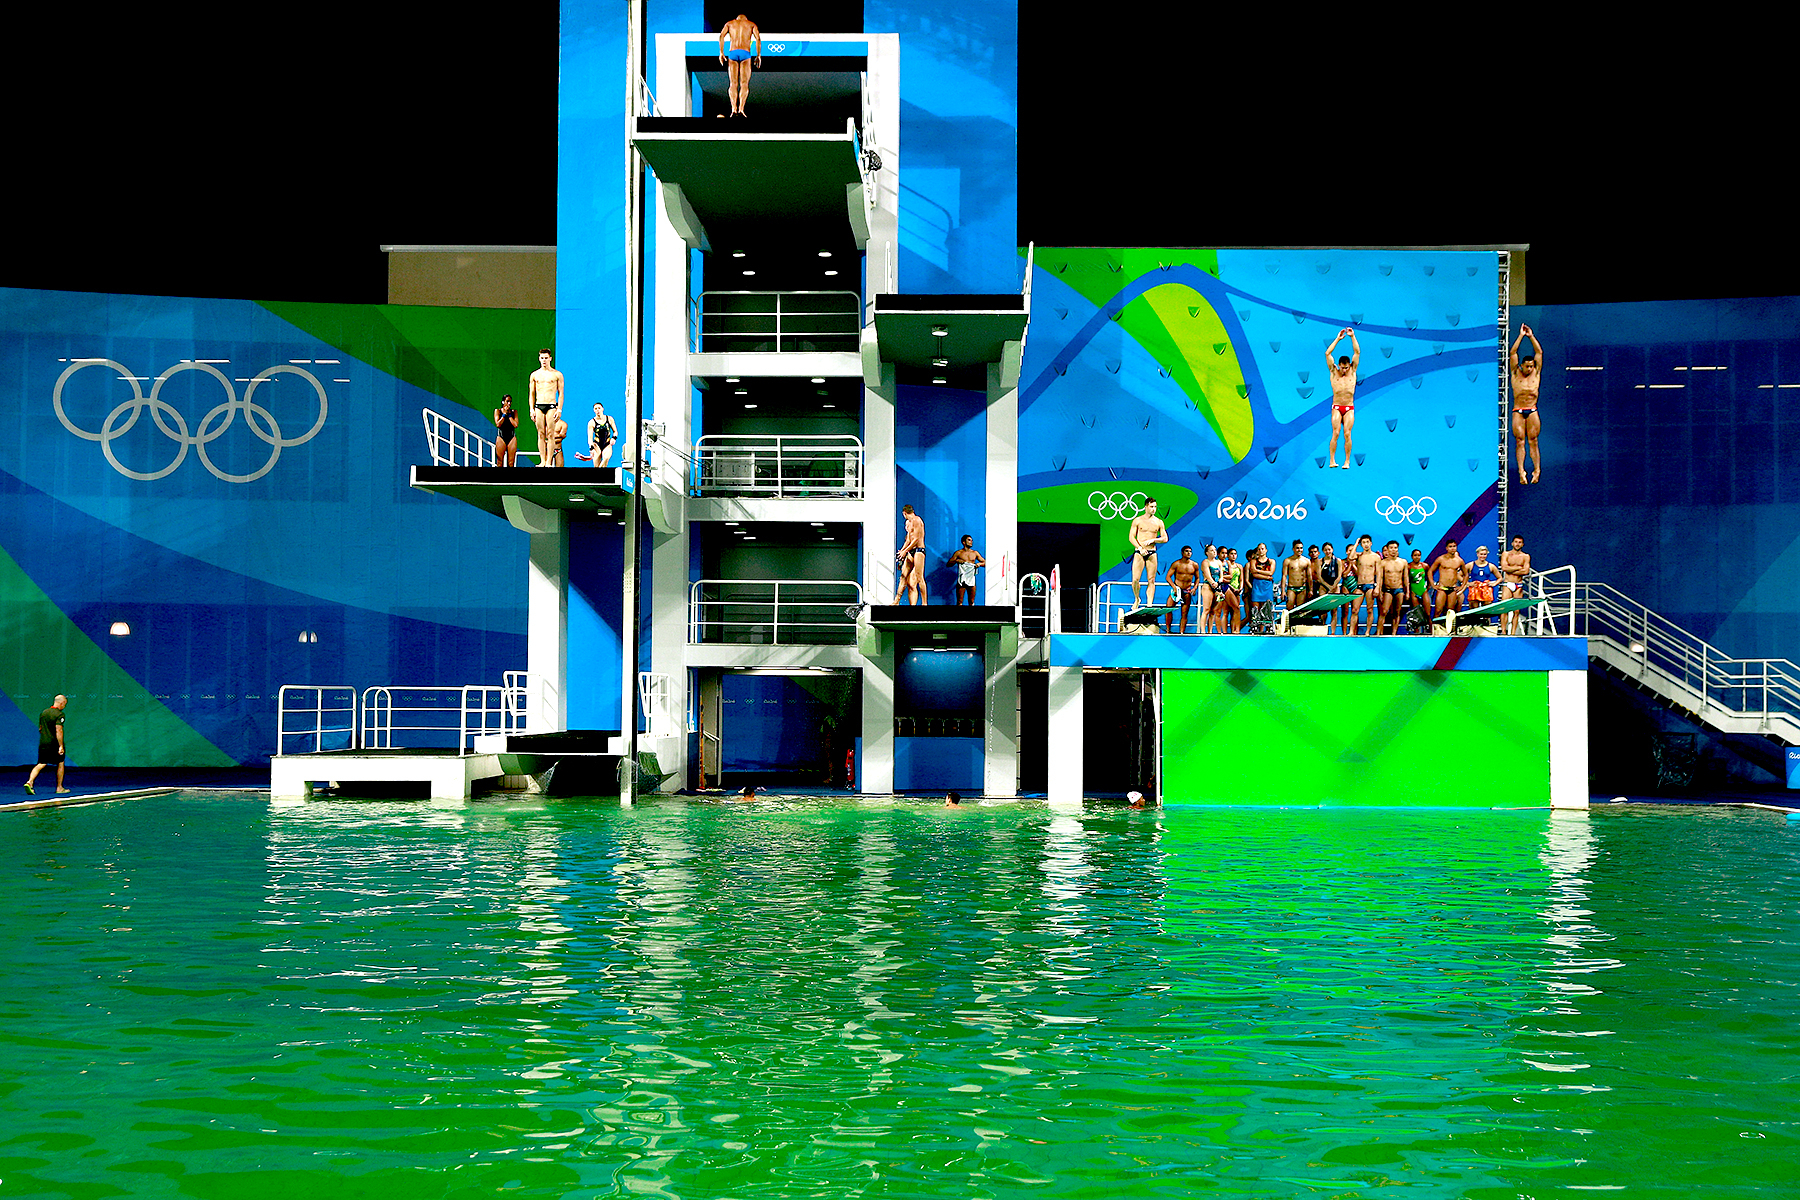 General view of the diving pool at Maria Lenk Aquatics Centre on Day 4 of the Rio 2016 Olympic Games on August 9, 2016 in Rio de Janeiro, Brazil.